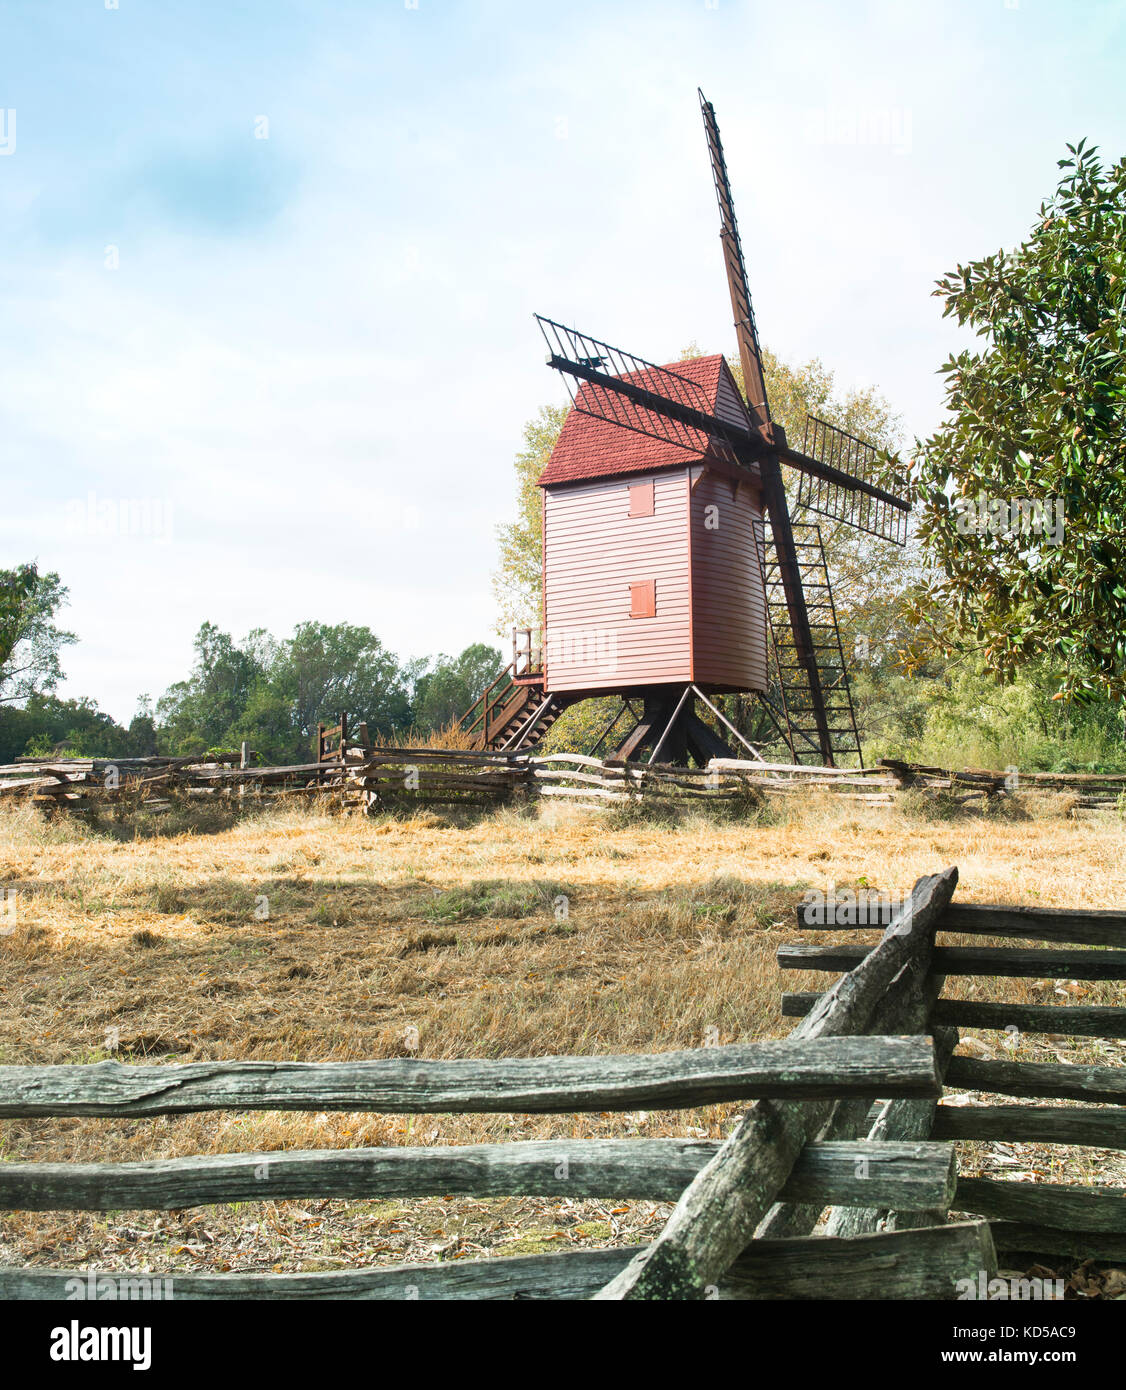 Robertson's Windmill in the Colonial Williamsburg historic area is a Tower Mill whose entire structure rotates - Stock Image